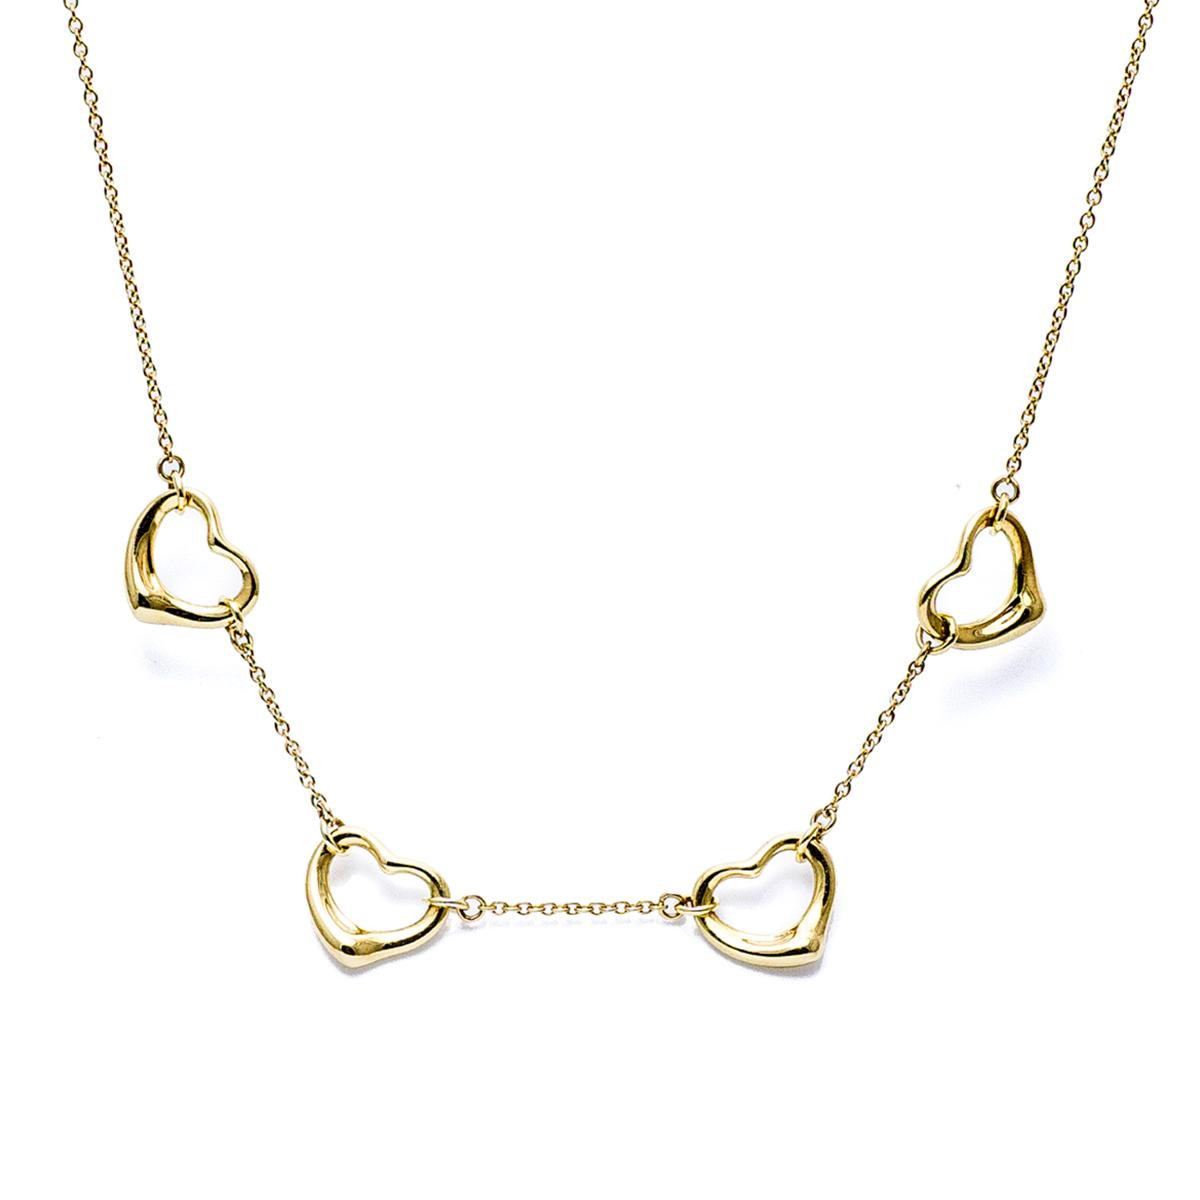 Vintage Tiffany & Co. Elsa Peretti 18k Open Hearts Necklace